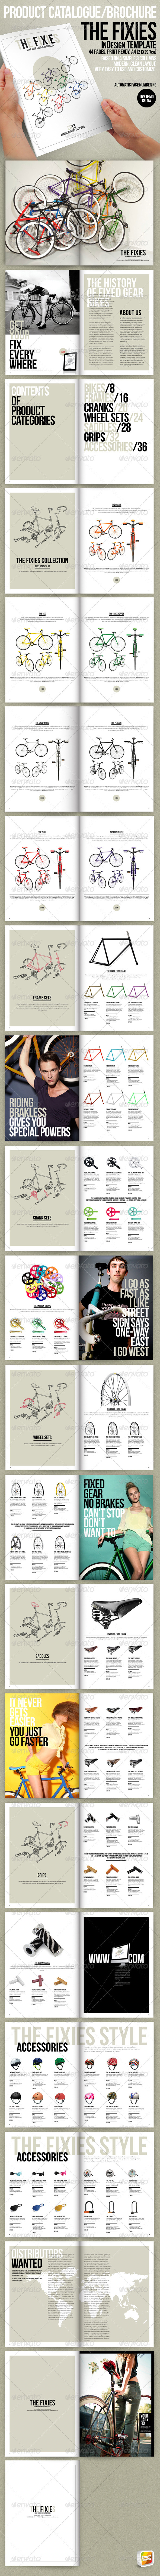 The Fixies-Product Catalogue InDesign template - Catalogs Brochures